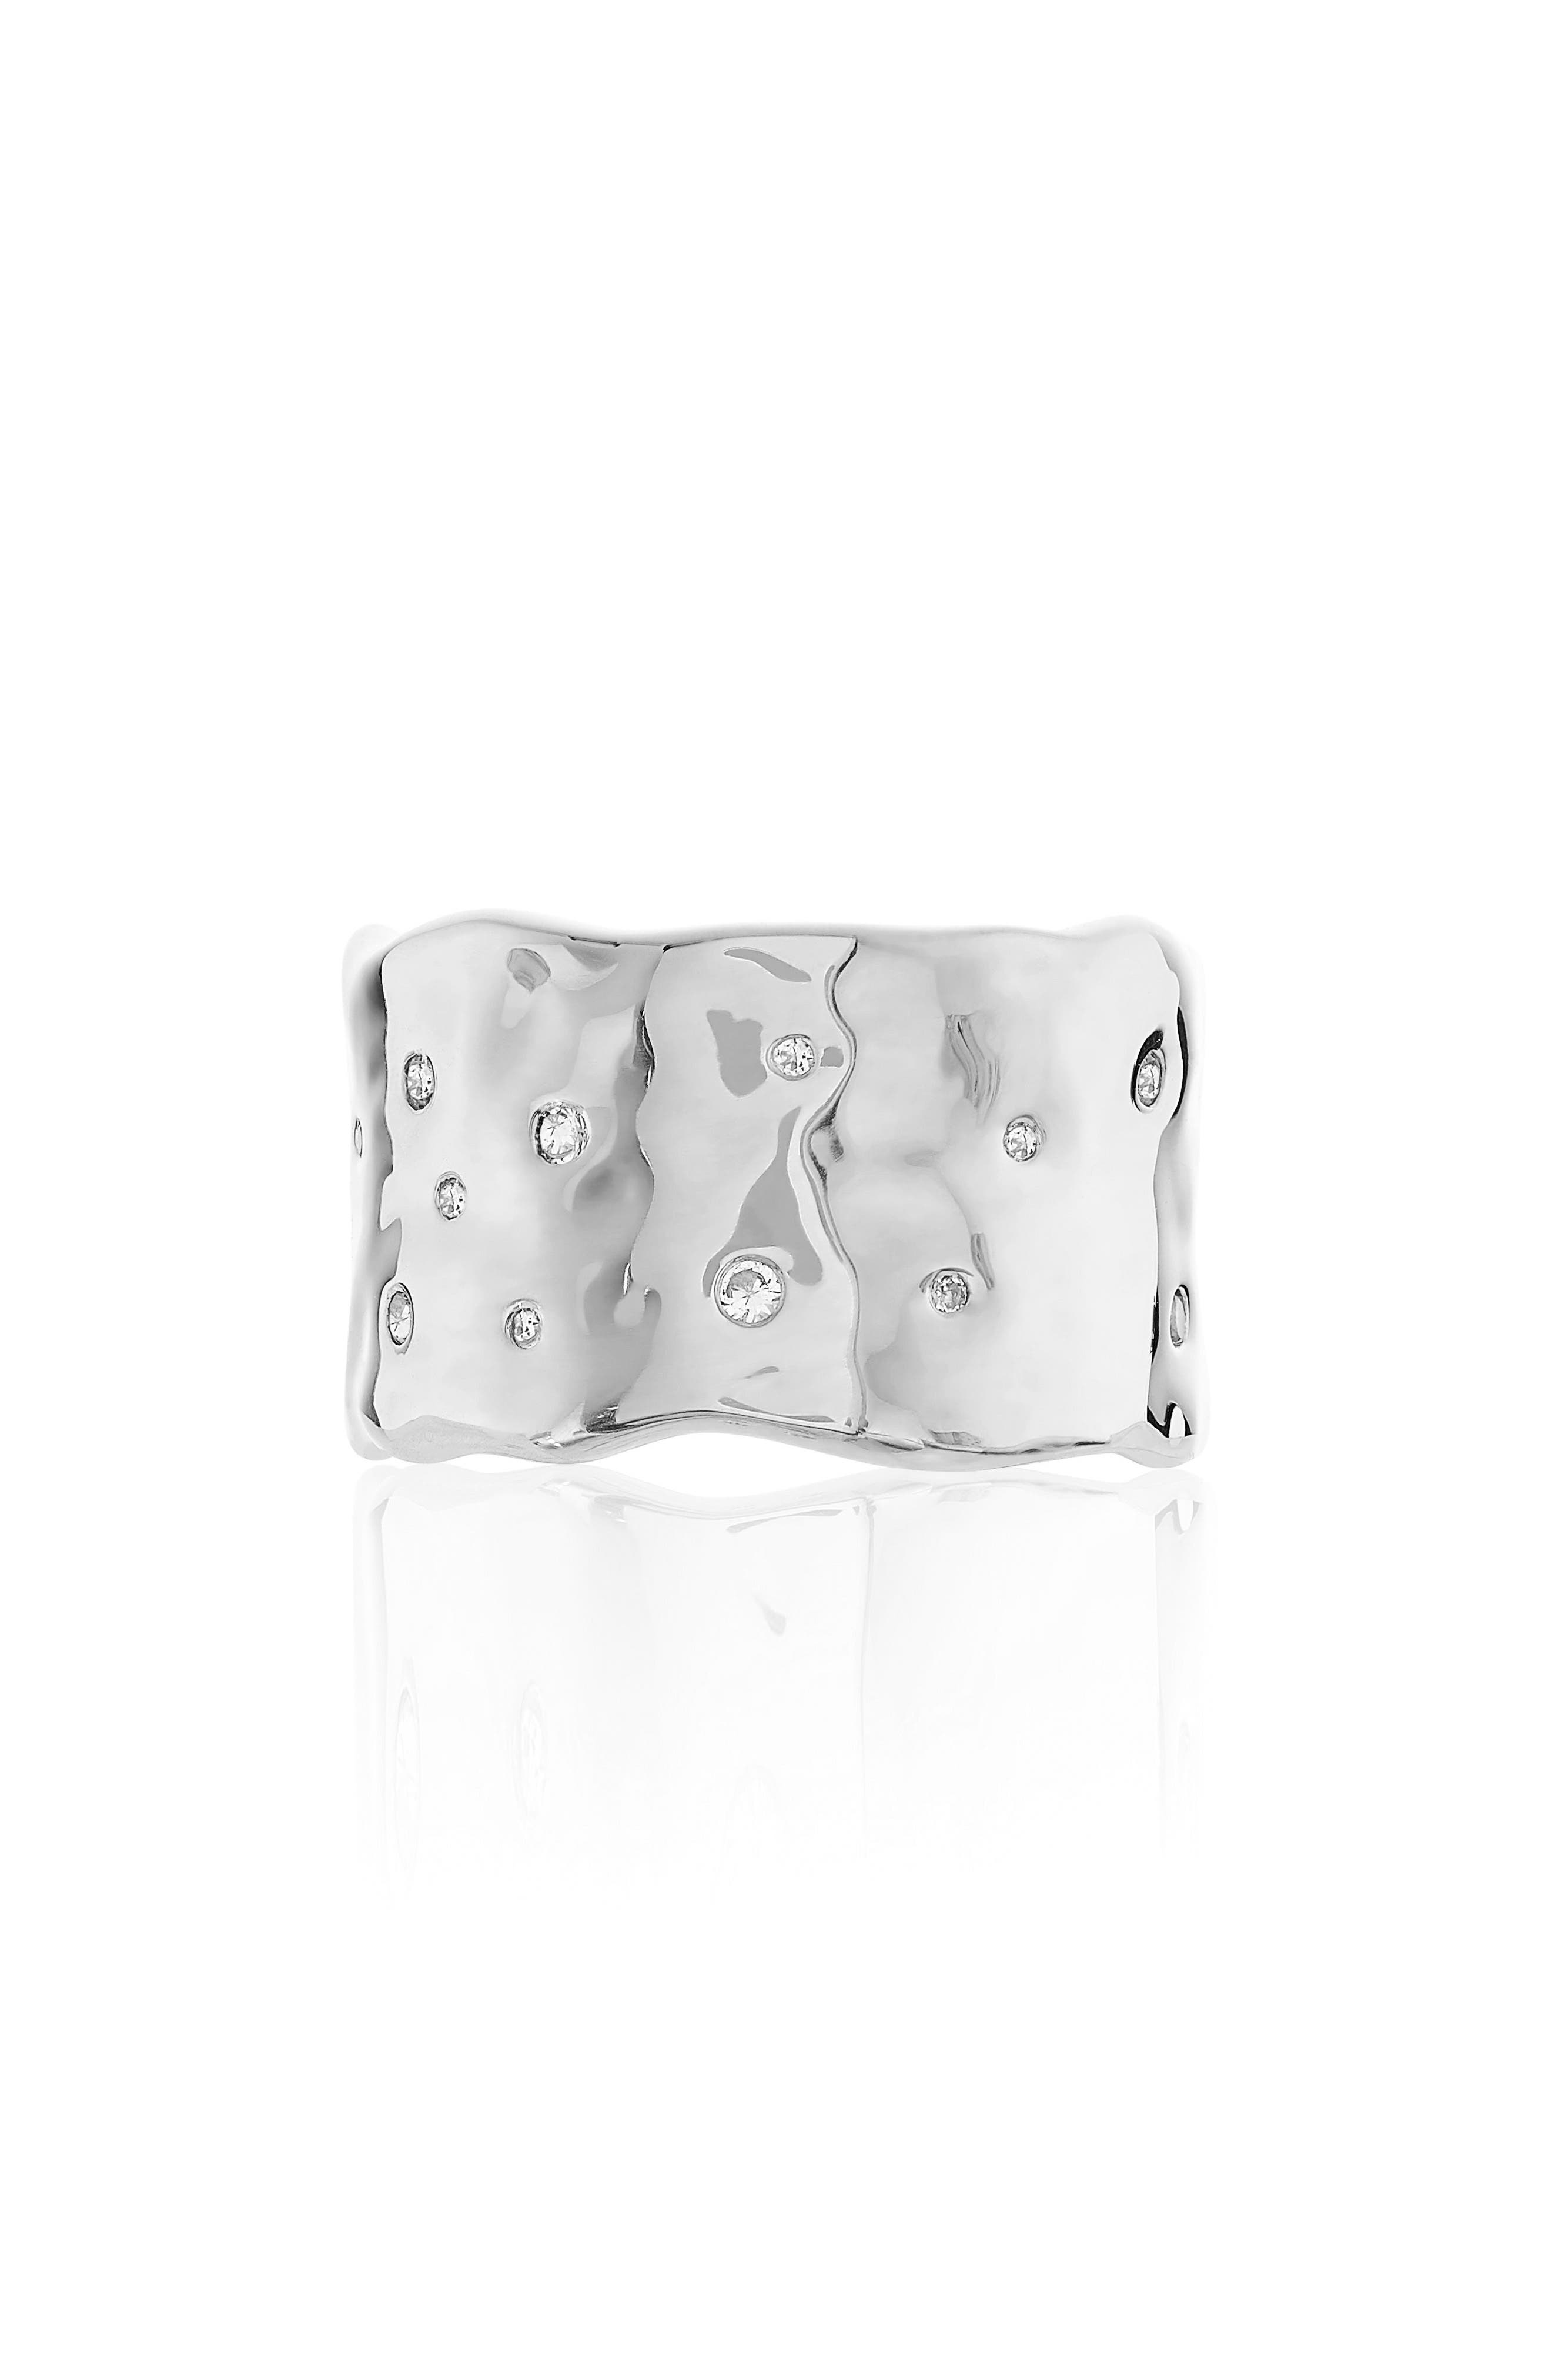 Siren Scatter Band Ring,                         Main,                         color, Silver/ White Topaz